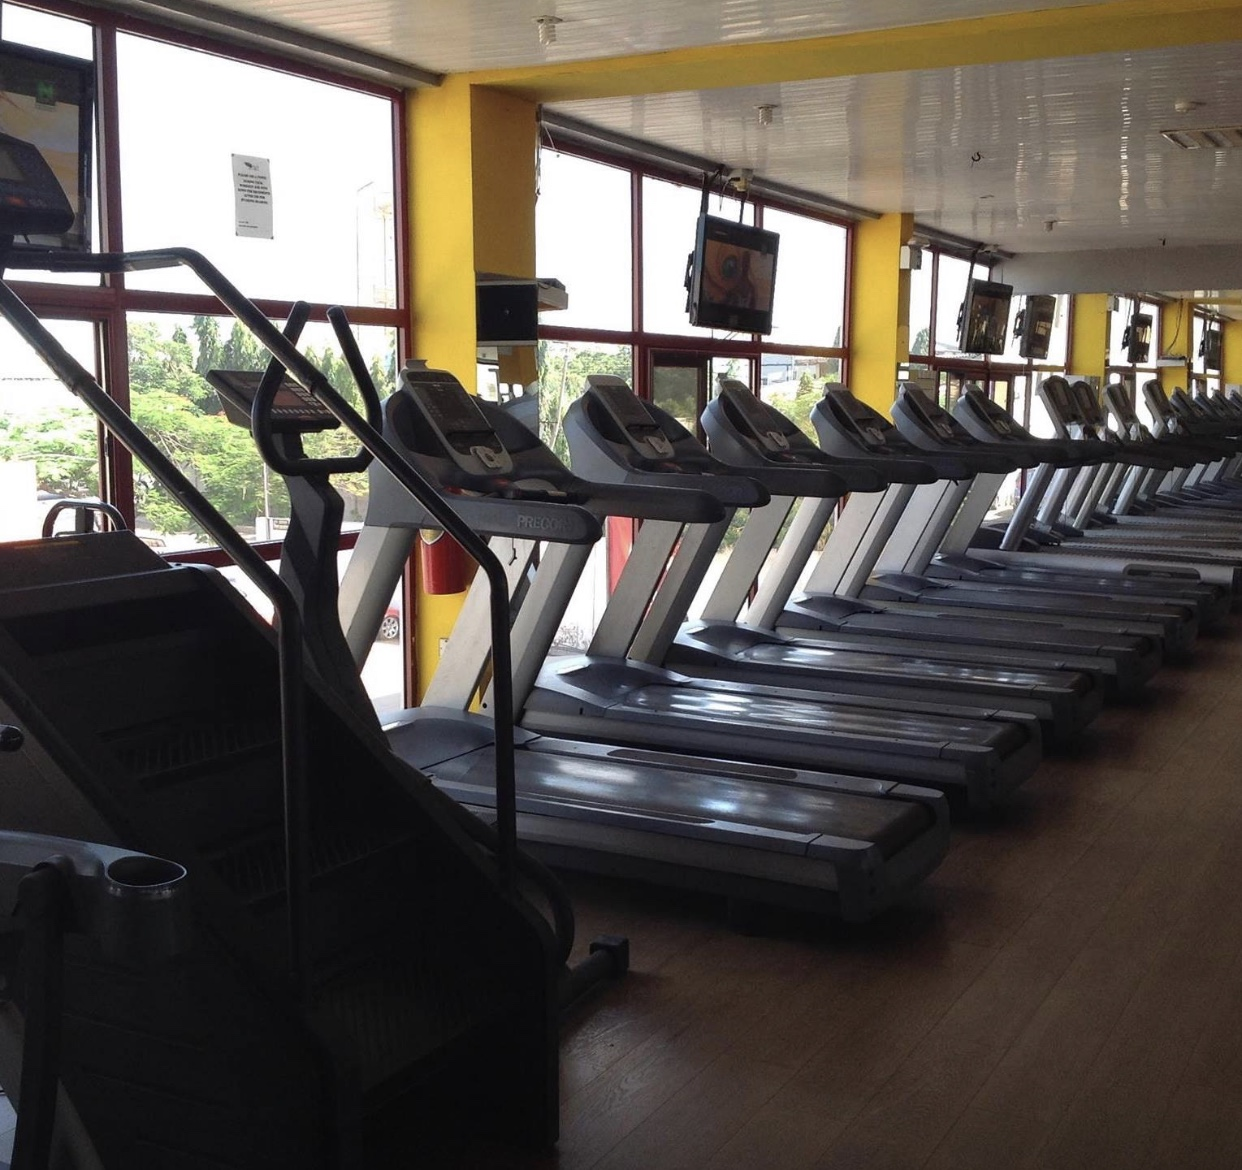 82a29648d2a46 20 Popular Gyms in Accra To Help You Get Fit | Circumspecte